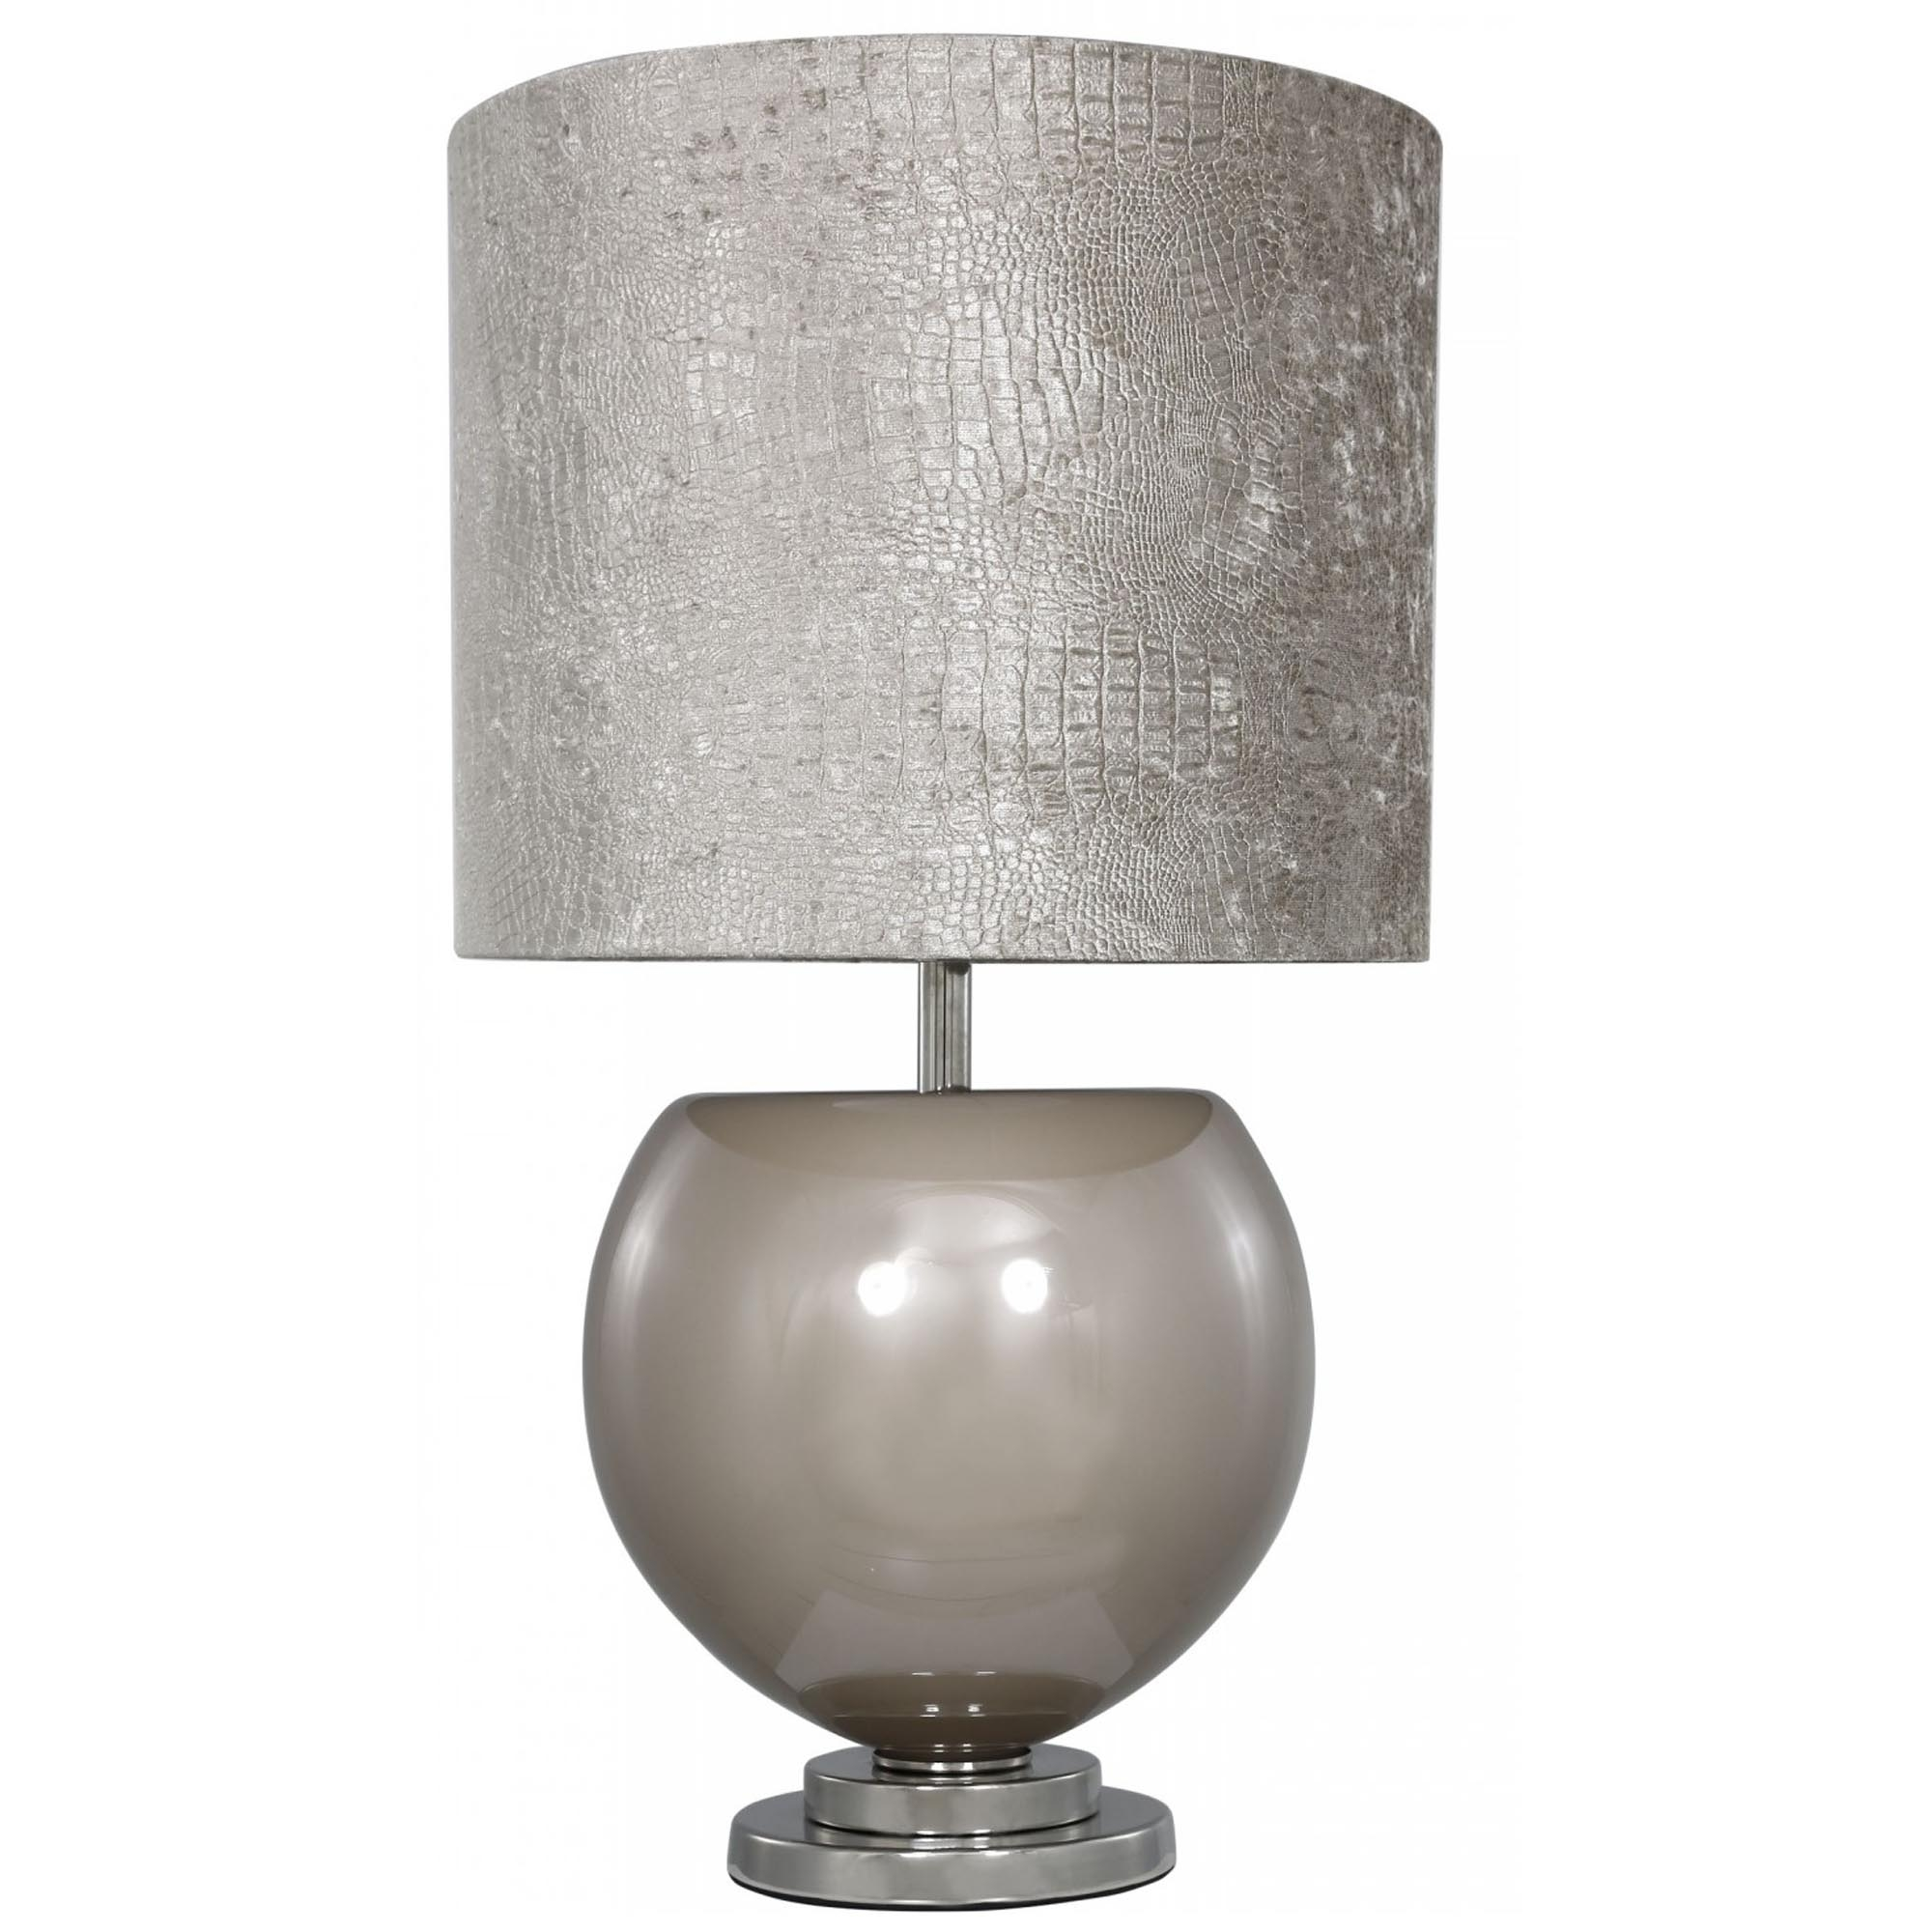 Taupe Bowl Table Lamp Table Lamp Homesdirect365